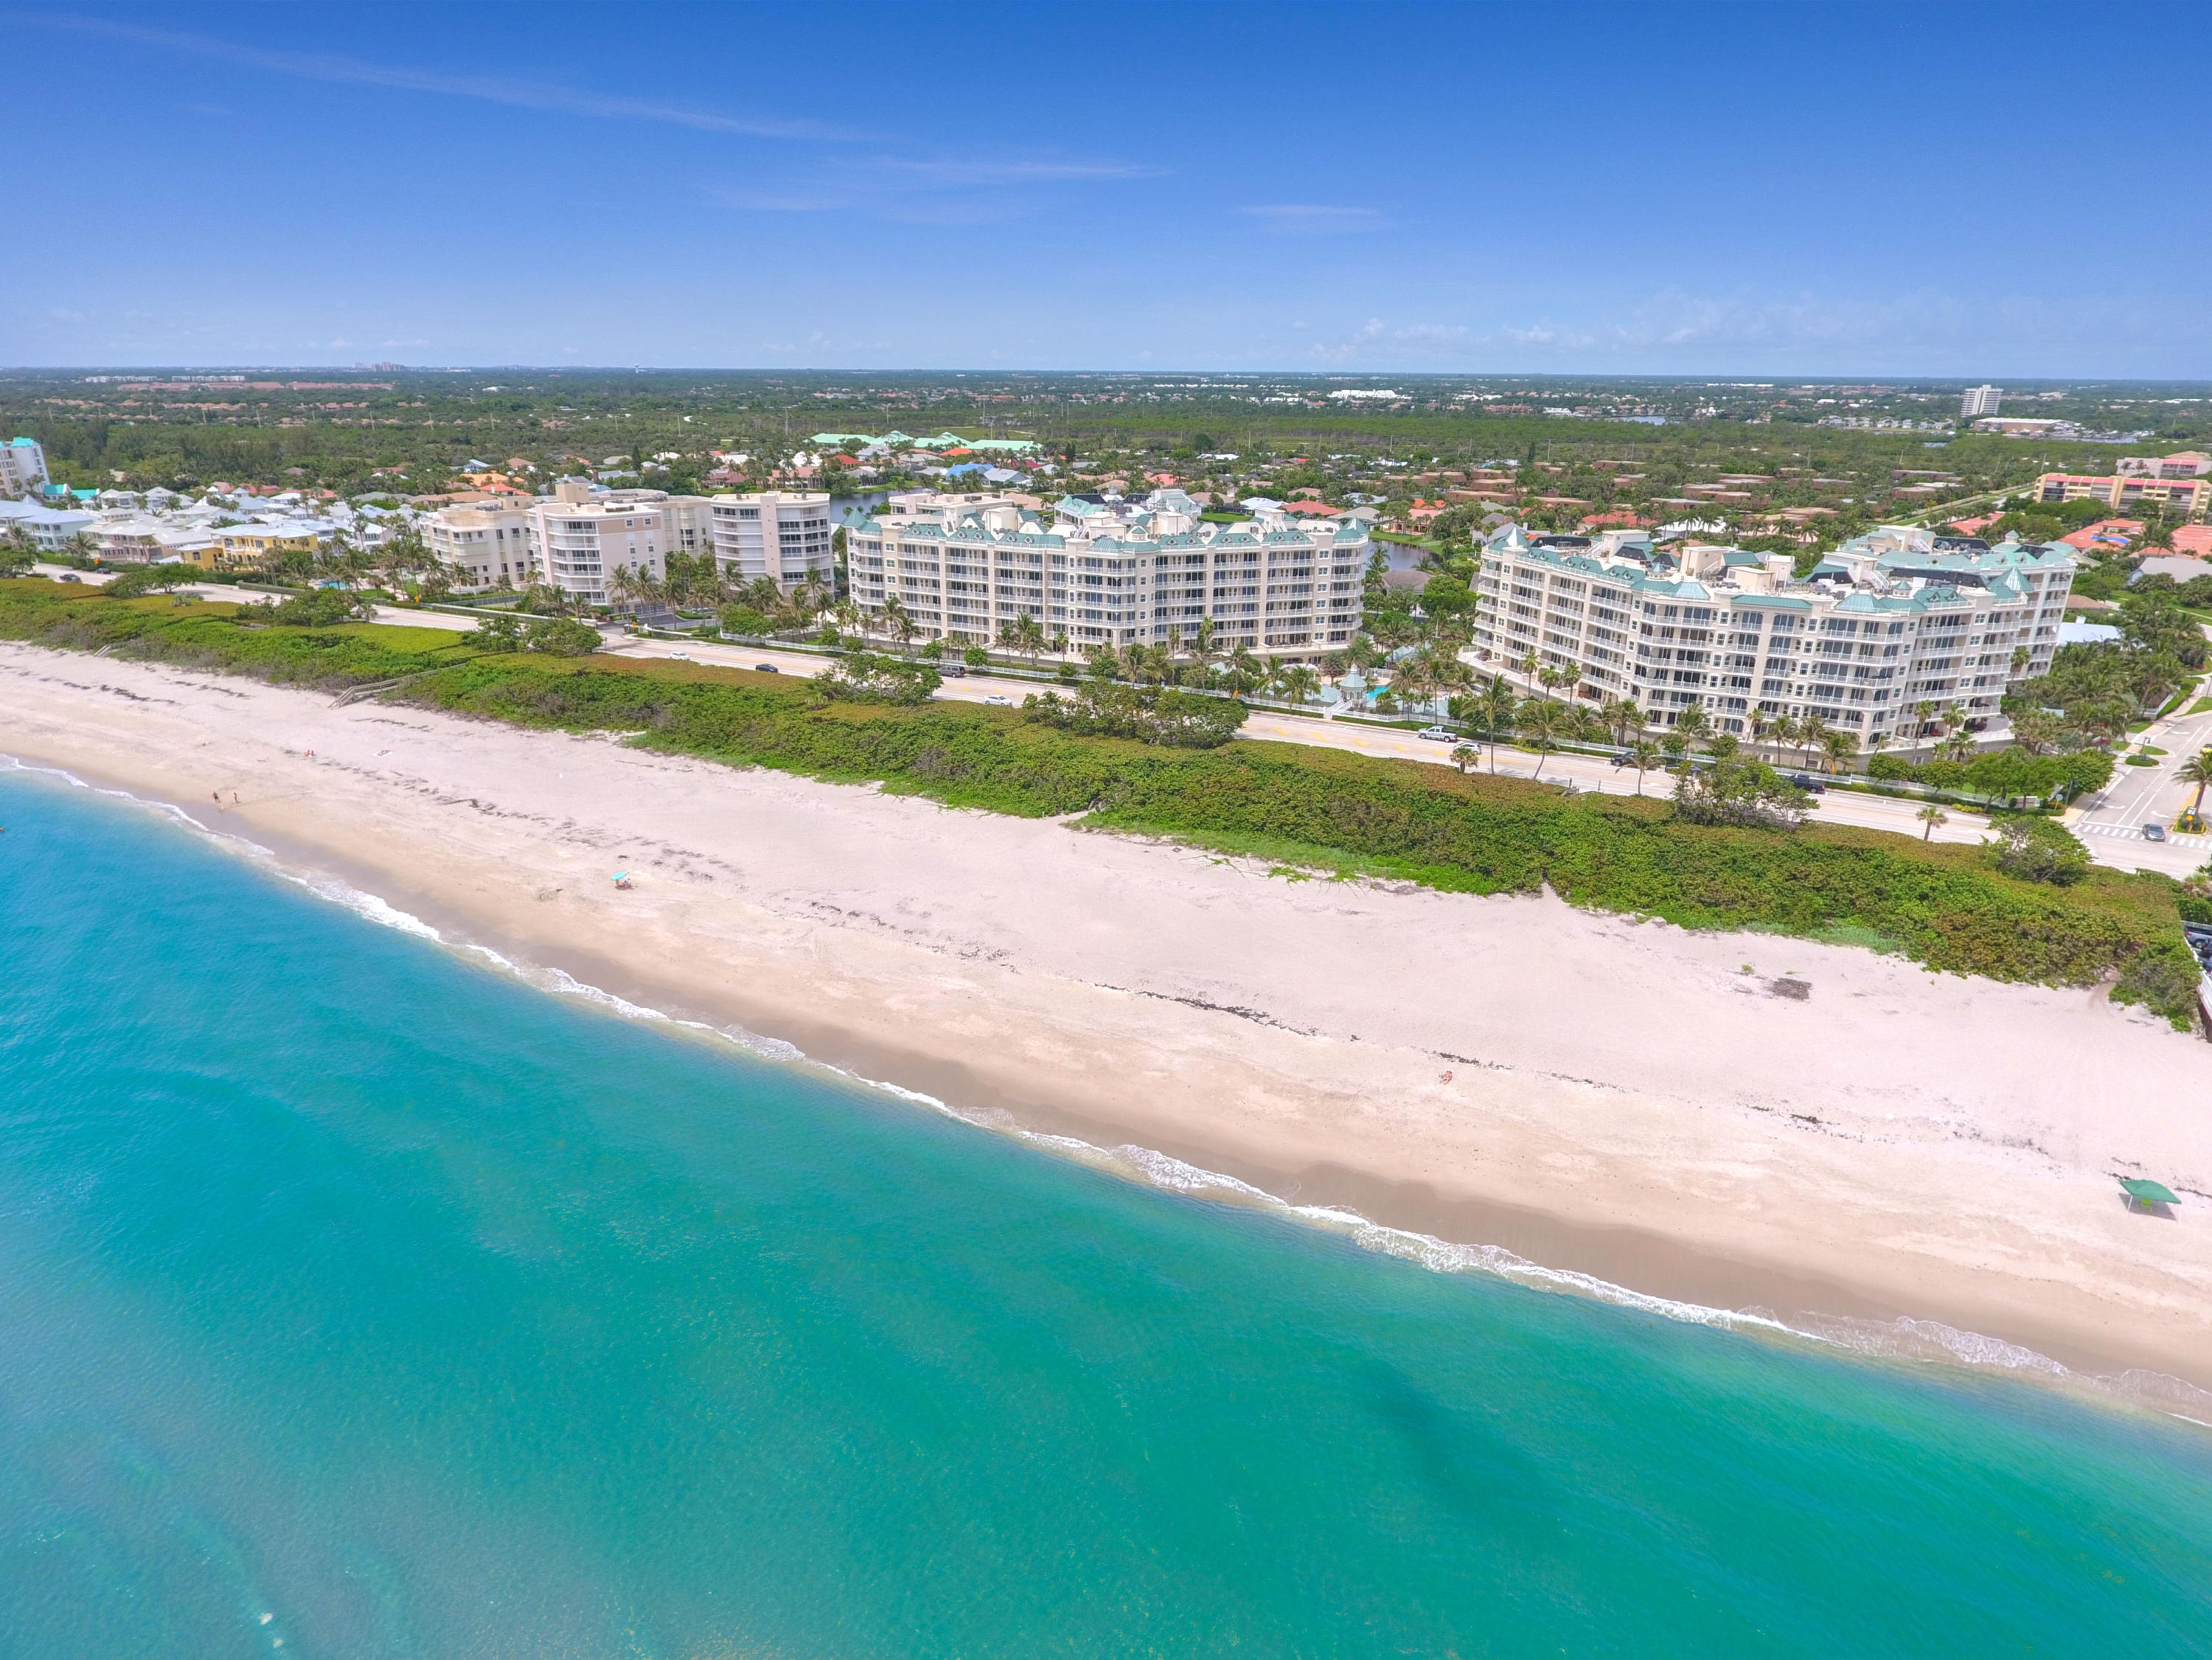 If you are looking for a gorgeous, West Indies decorated, oceanfront condo, you will find it here. This highly sought after floor plan is rarely available, offering spectacular ocean views. Enjoy 3 bedrooms, 2.1 bathrooms or keep as a 2 bedroom with den/office. This condo is sold furnished with high-end luxurious decor. Upgrades in this condo are endless. Recessed rope lighting, custom door handles, plantation shutters throughout, pristine trim carpentry work, designer ceilings, with wood and marble floors throughout. Even the laundry room is breathtaking. The master suite features sliding glass doors which lead out to the large terrace directly overlooking the ocean. Master bath offers separate shower, free standing tub and double sinks. Amenities include a 24-hour manned gated entrance, resort style pool and spa, fitness center, club room, billiard room, tennis courts, card room, 2 covered garage spaces and 2 storage rooms located on the same floor near the elevator. Large dogs welcome. Close to fine dining and shopping. Pet friendly beach.